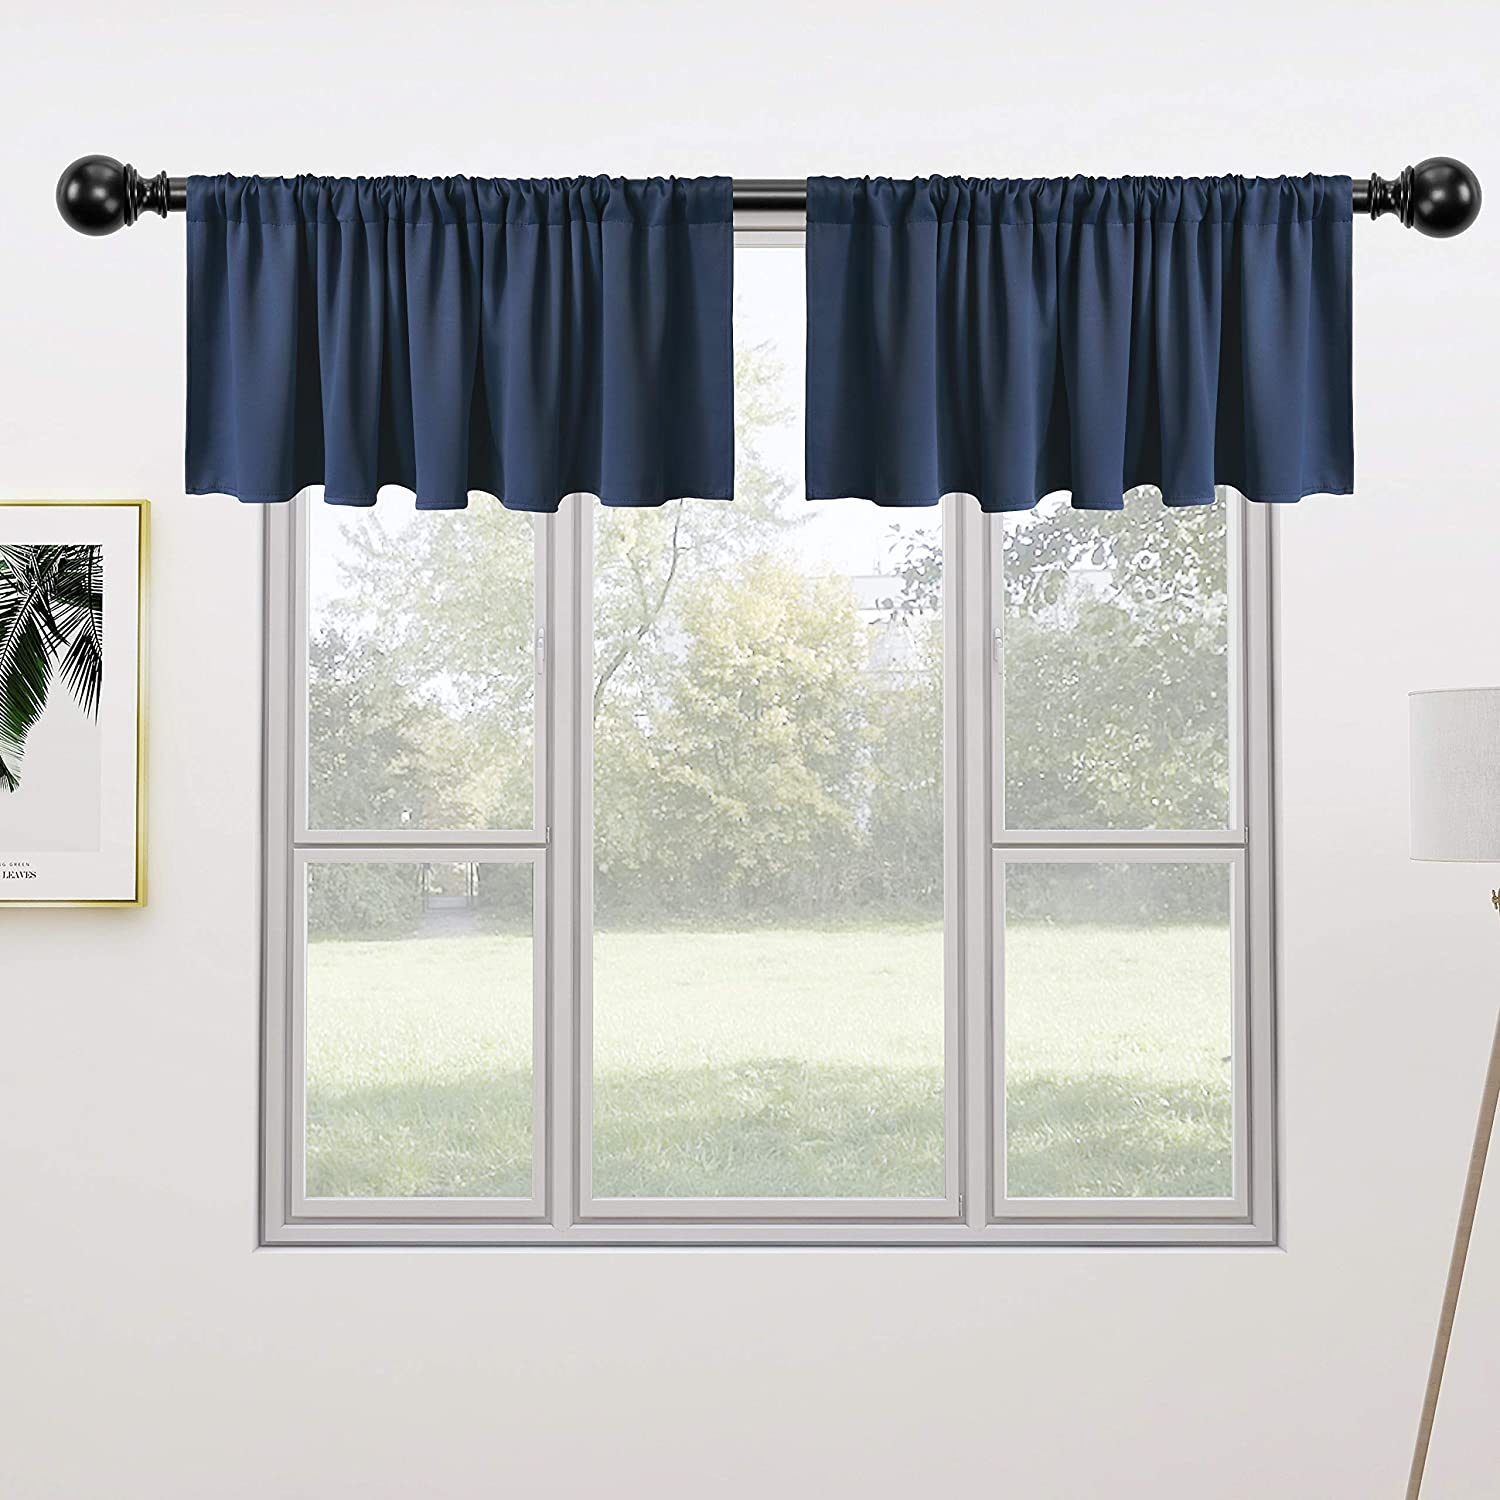 Rod Pocket Short Blackout Curtain for Small Windows 42 x 18 inch Long Thermal Window Treatment and Room Darkening Cafe Curtain Panels 2 Pieces Beige FLOWEROOM Valance Kitchen Curtains Set